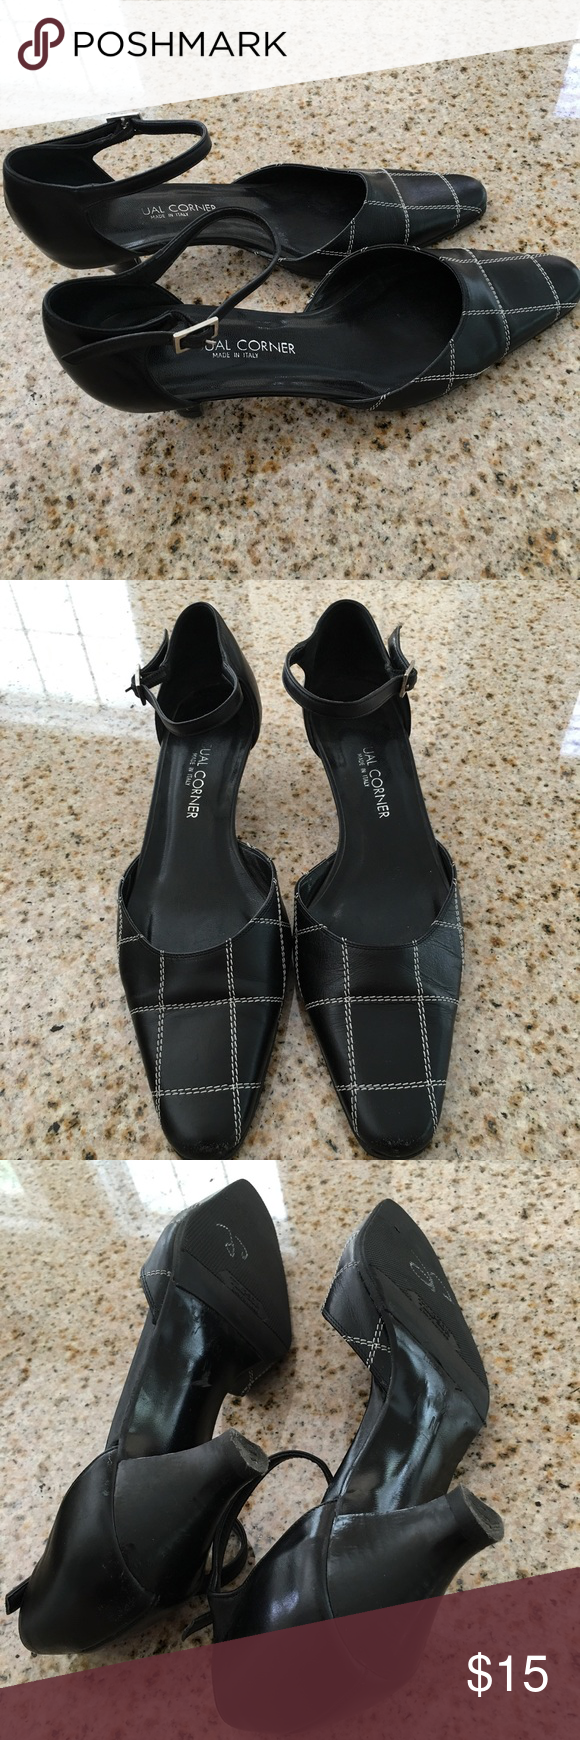 Italian Black Leather Ankle Strap Kitten Heels Italian Black Leather Ankle Strap Kitten Heels by Casual Corner. Size 8 1/2 M. Good condition. Minor wear on back of heel and tip of shoe. Casual Corner Shoes Heels